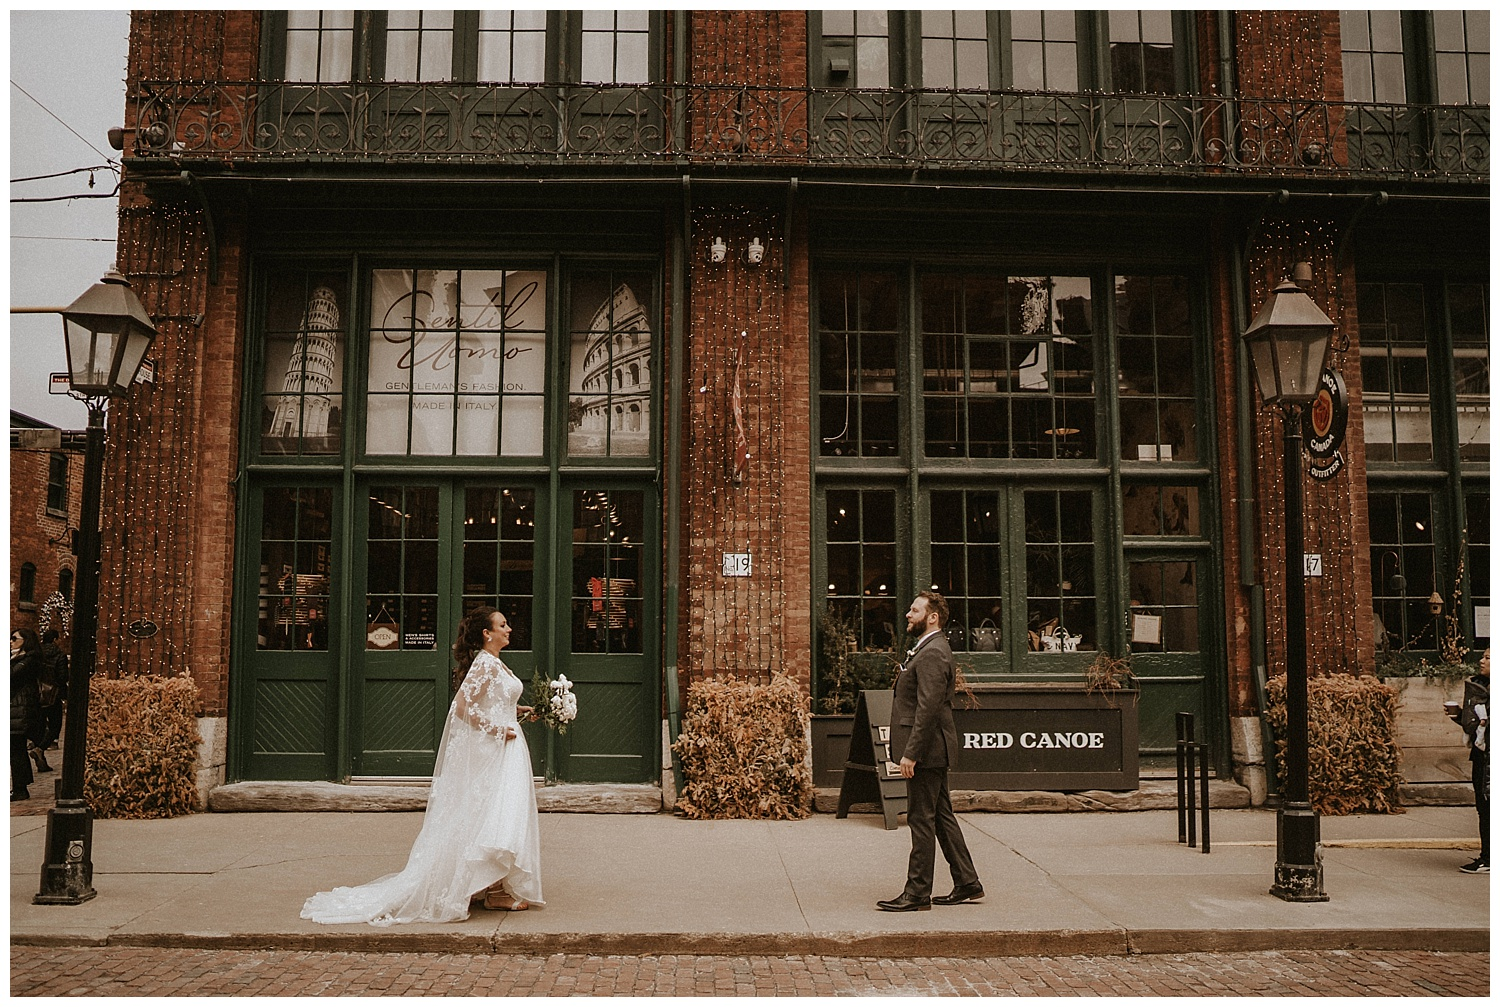 Katie Marie Photography | Archeo Wedding Arta Gallery Wedding | Distillery District Wedding | Toronto Wedding Photographer | Hamilton Toronto Ontario Wedding Photographer |_0069.jpg